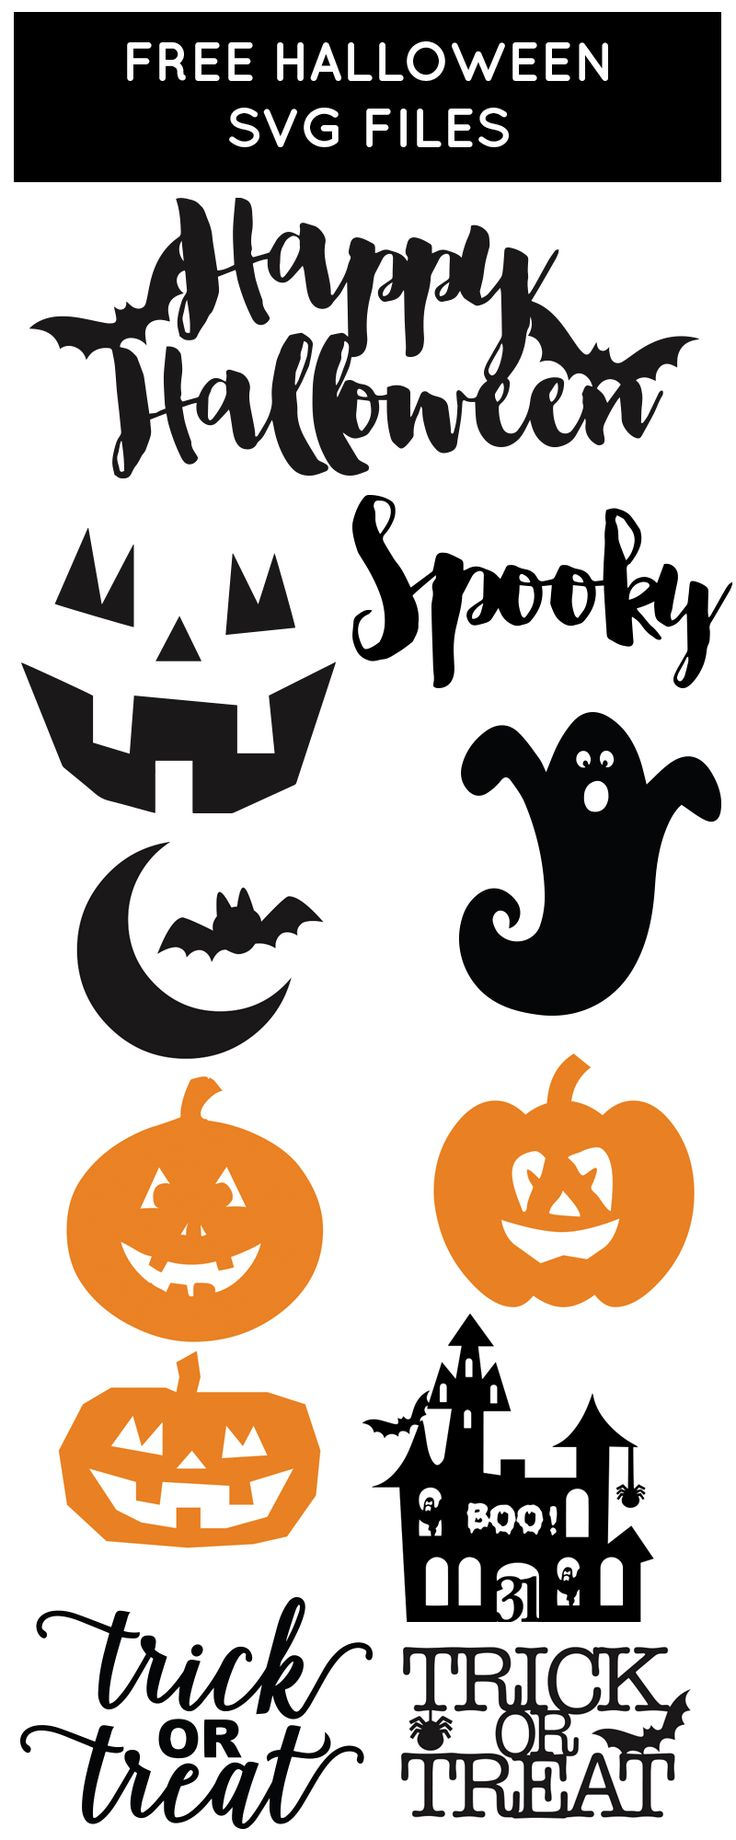 Free Halloween SVG Files from @chicfetti